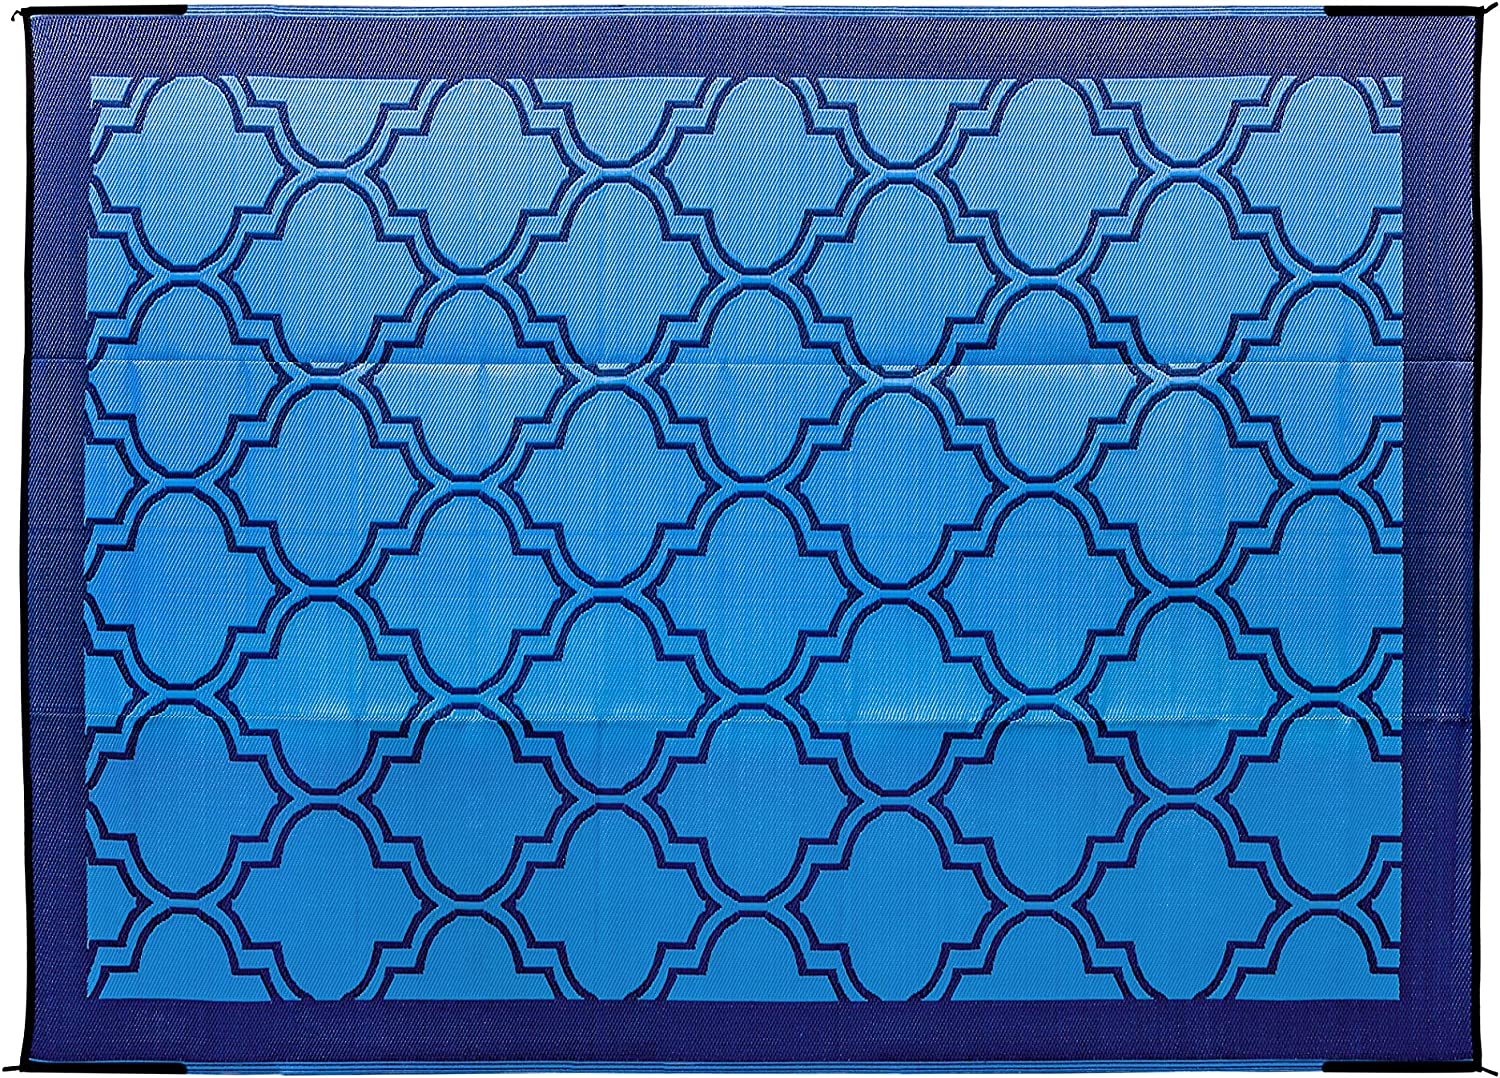 Amazon Com Camco Large Reversible Outdoor Patio Mat Mold And Mildew Resistant Easy To Clean Perfect For Picnics Cookouts Camping And The Beach 9 X 12 Lattice Blue Design 42856 Automotive